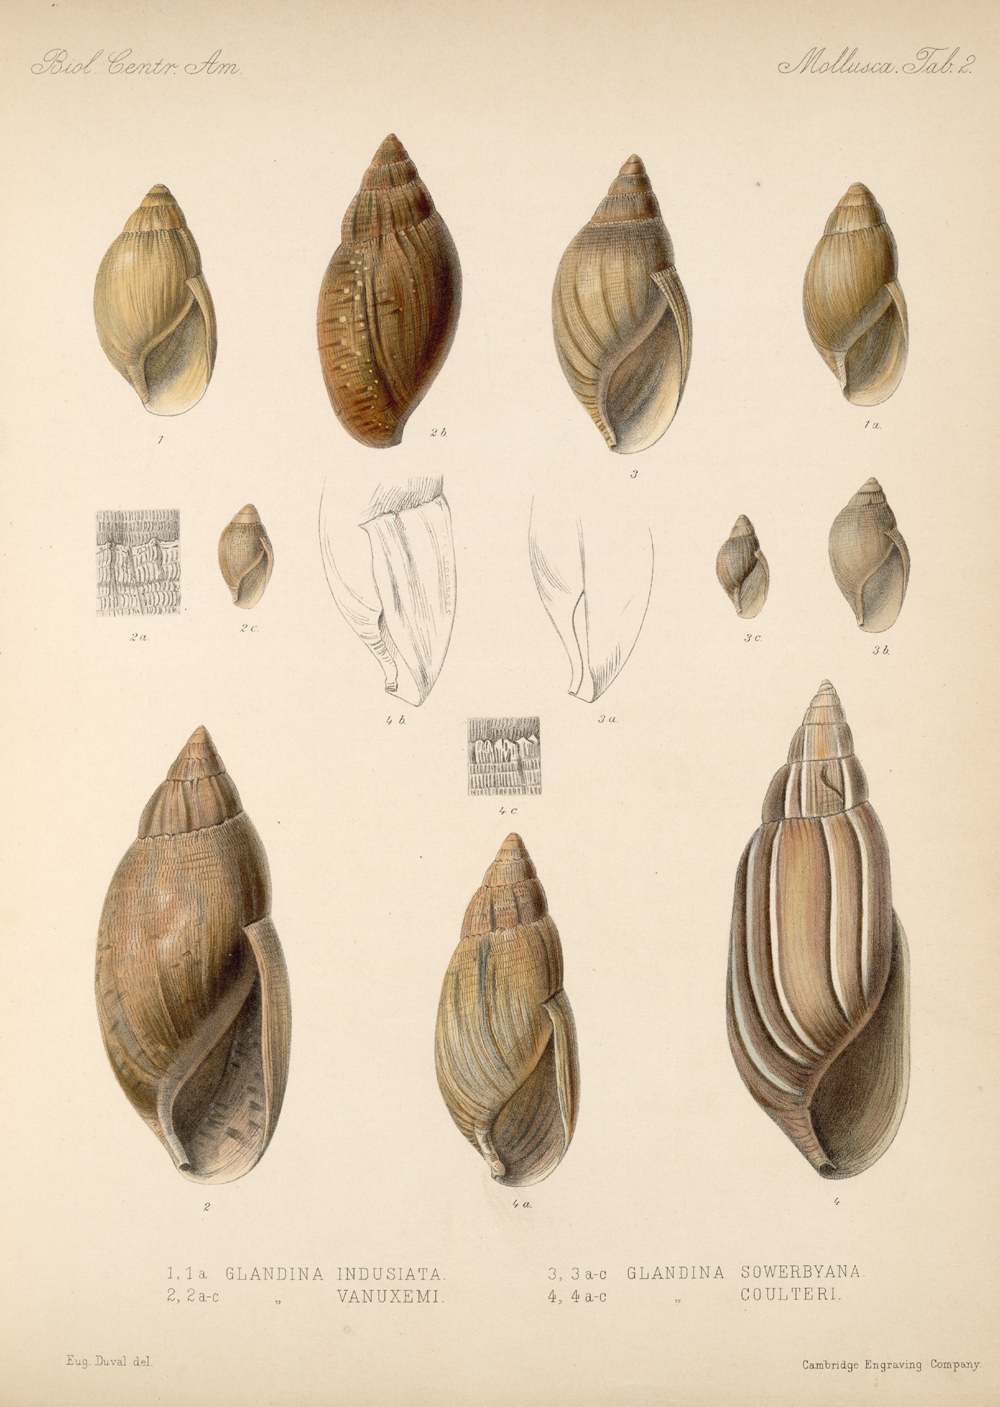 Shells and Mollusks,  Image number:bca_06_00_00_713